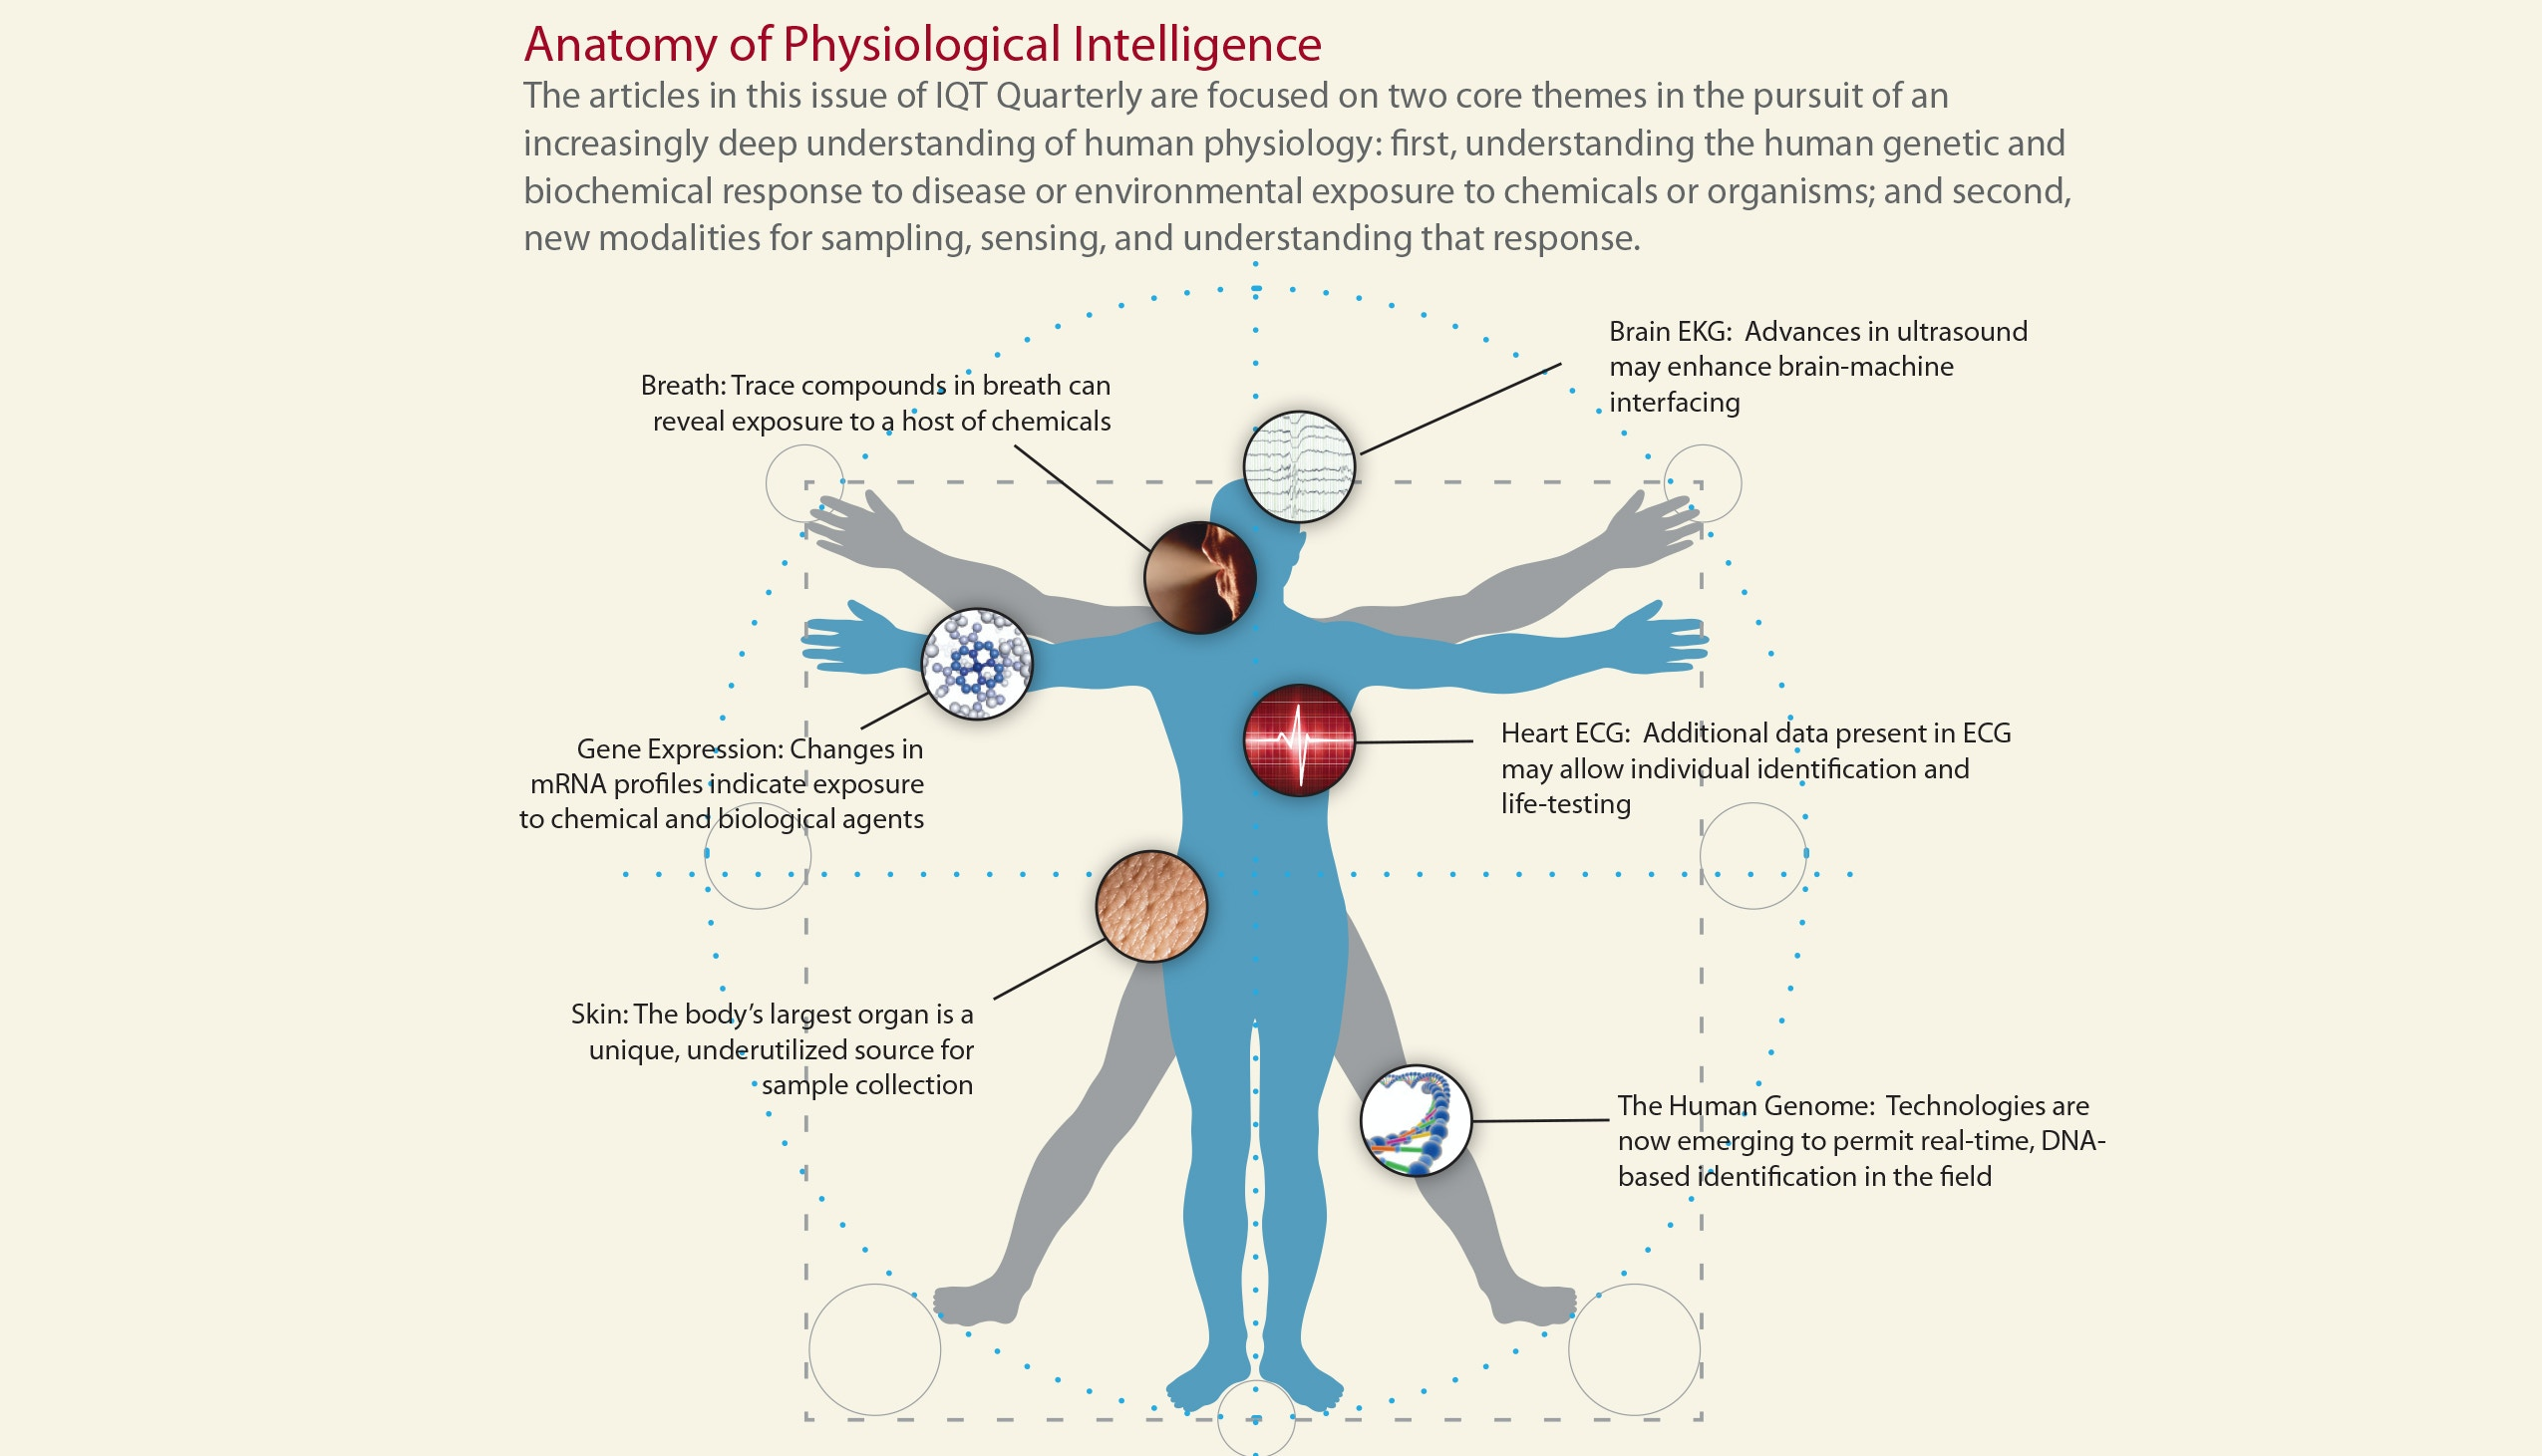 physiological_intelligence-3